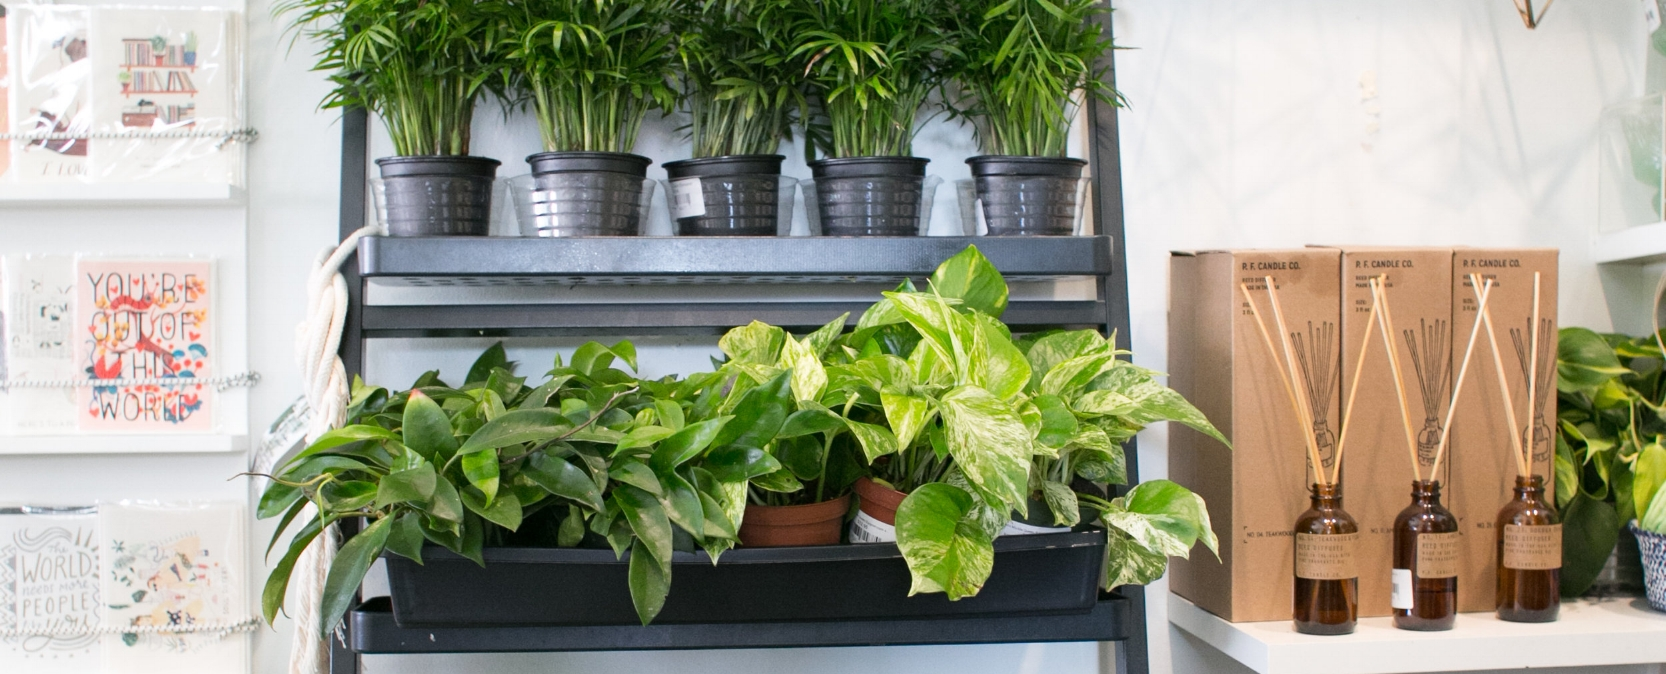 Devil's ivy (right) looks great on bookcases and in office spaces that don't get much light.